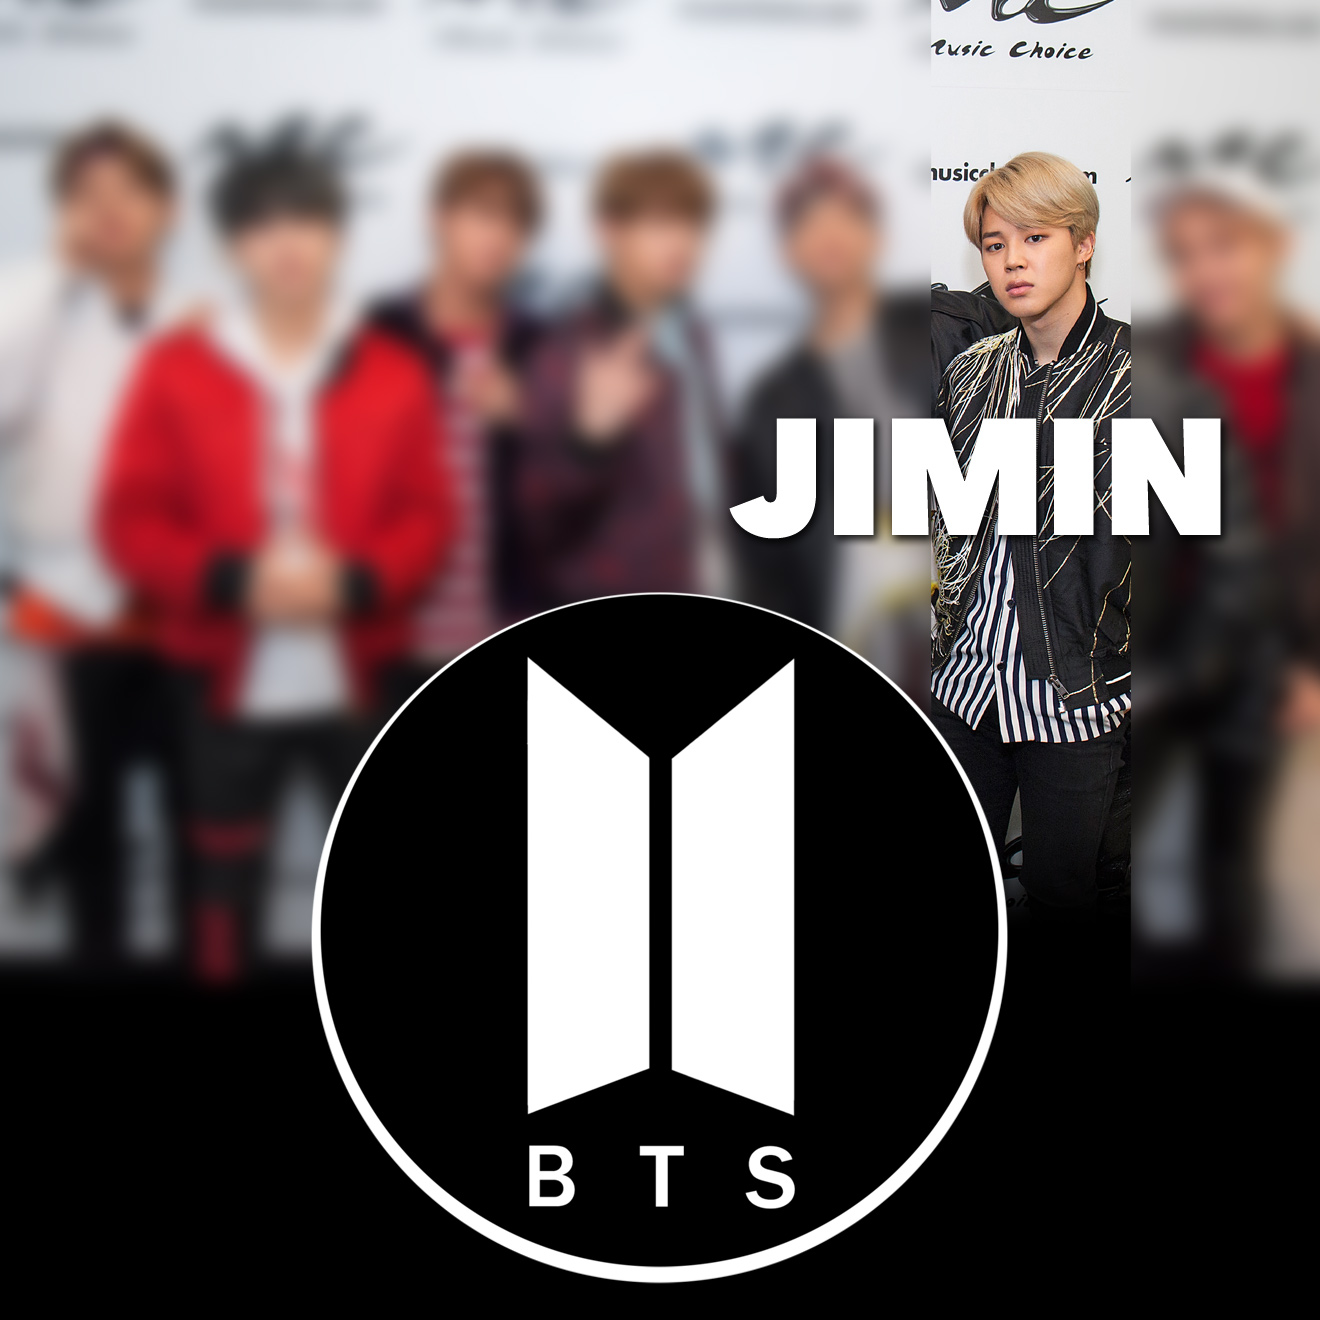 bts alle infos zu jimin. Black Bedroom Furniture Sets. Home Design Ideas